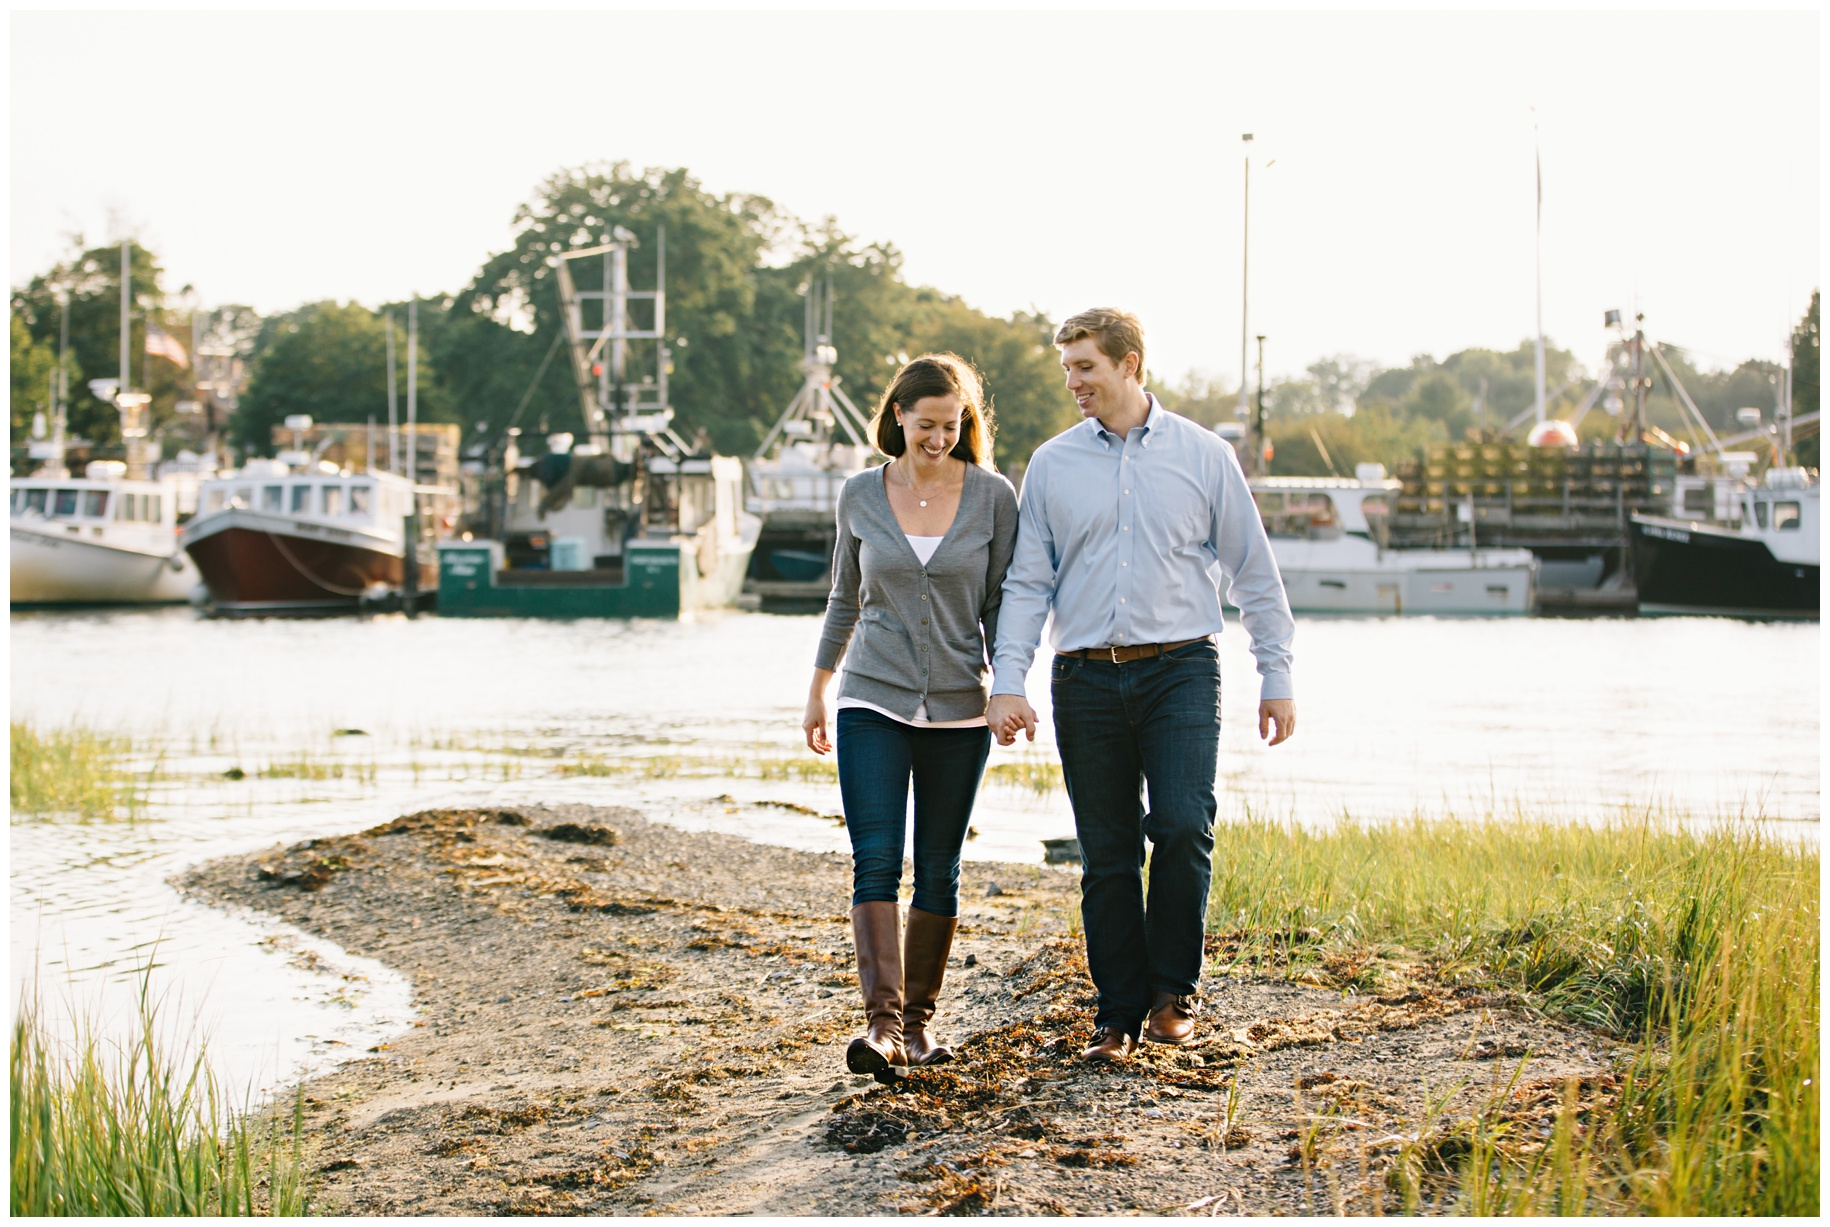 maineweddingphotographer_portsmouth_engagements_newhampshire_newengland-003